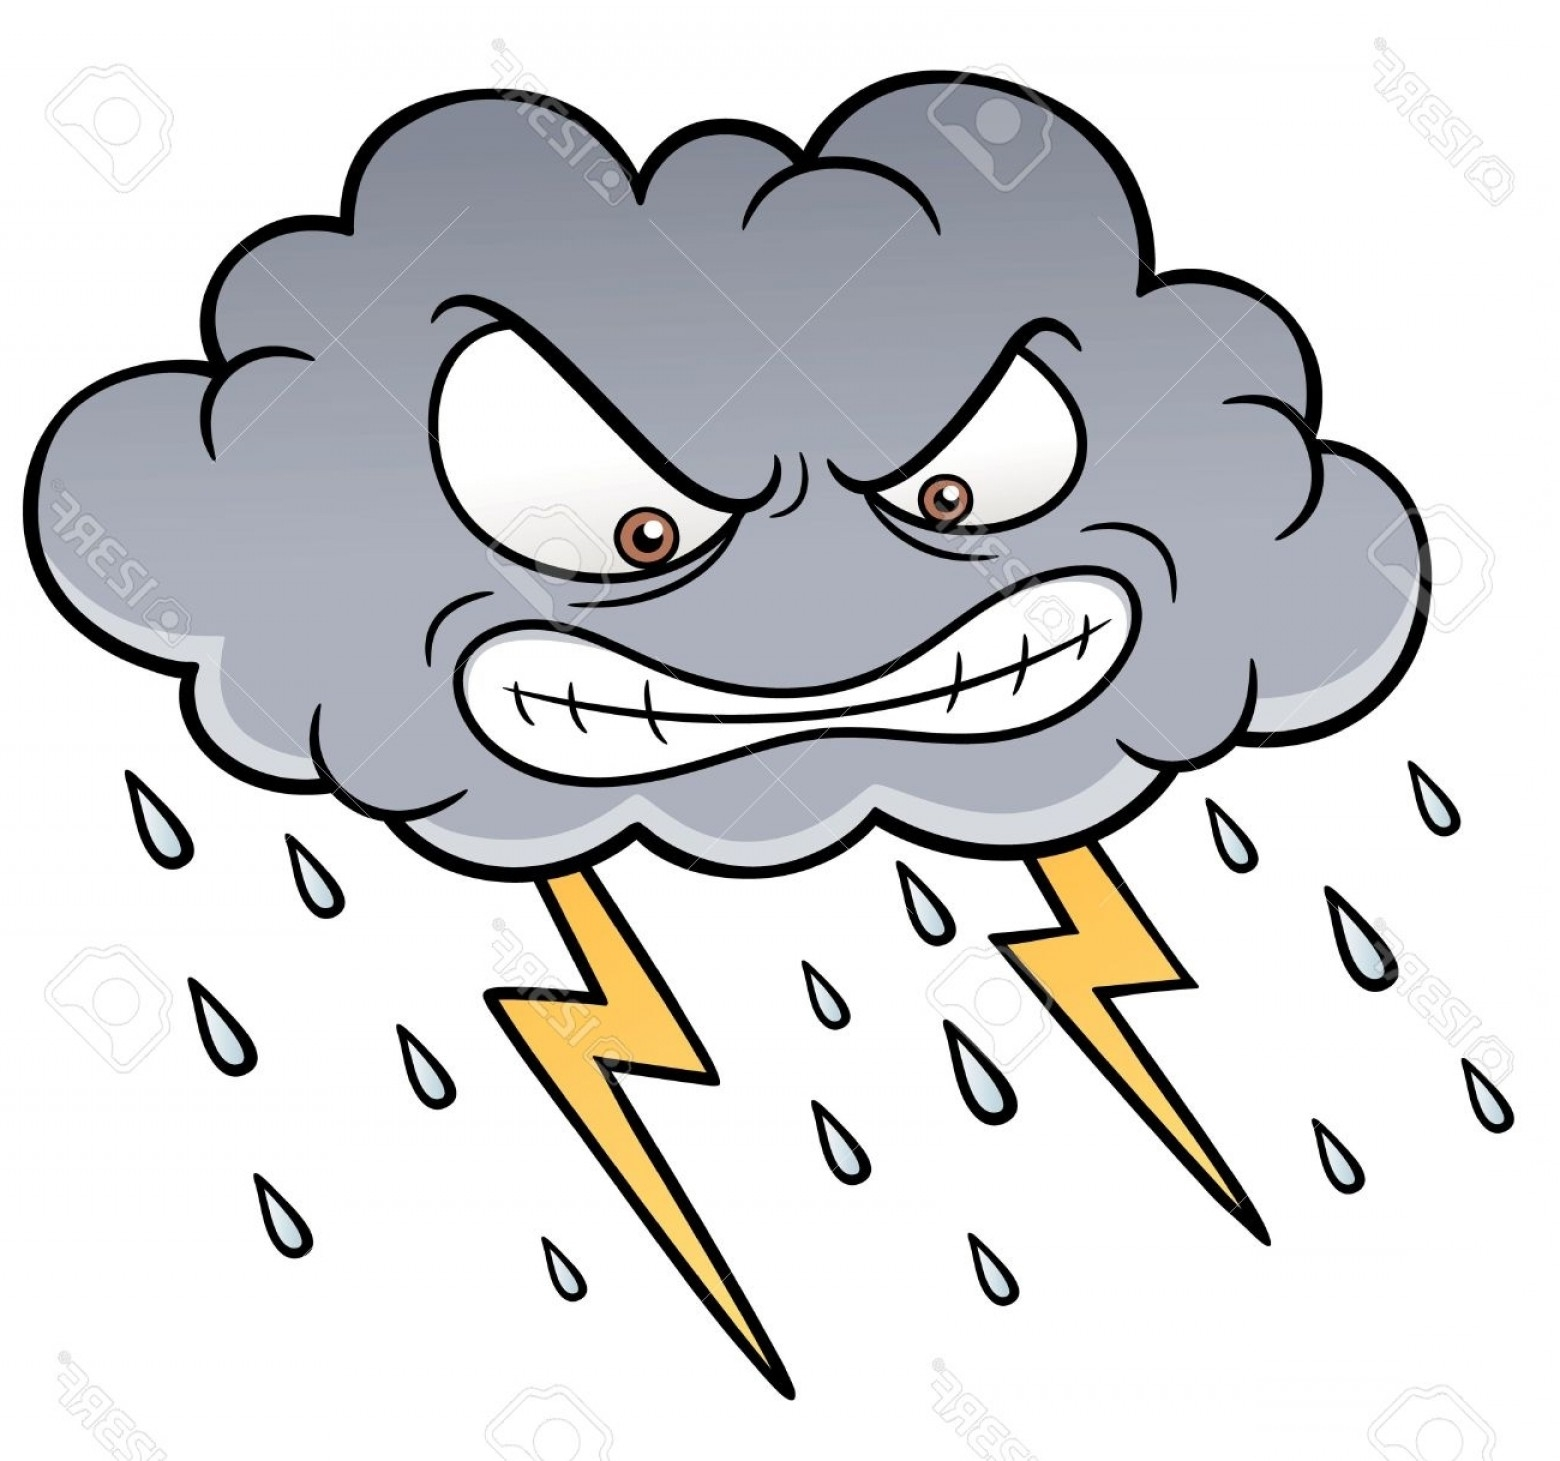 weather clipart stormy weather